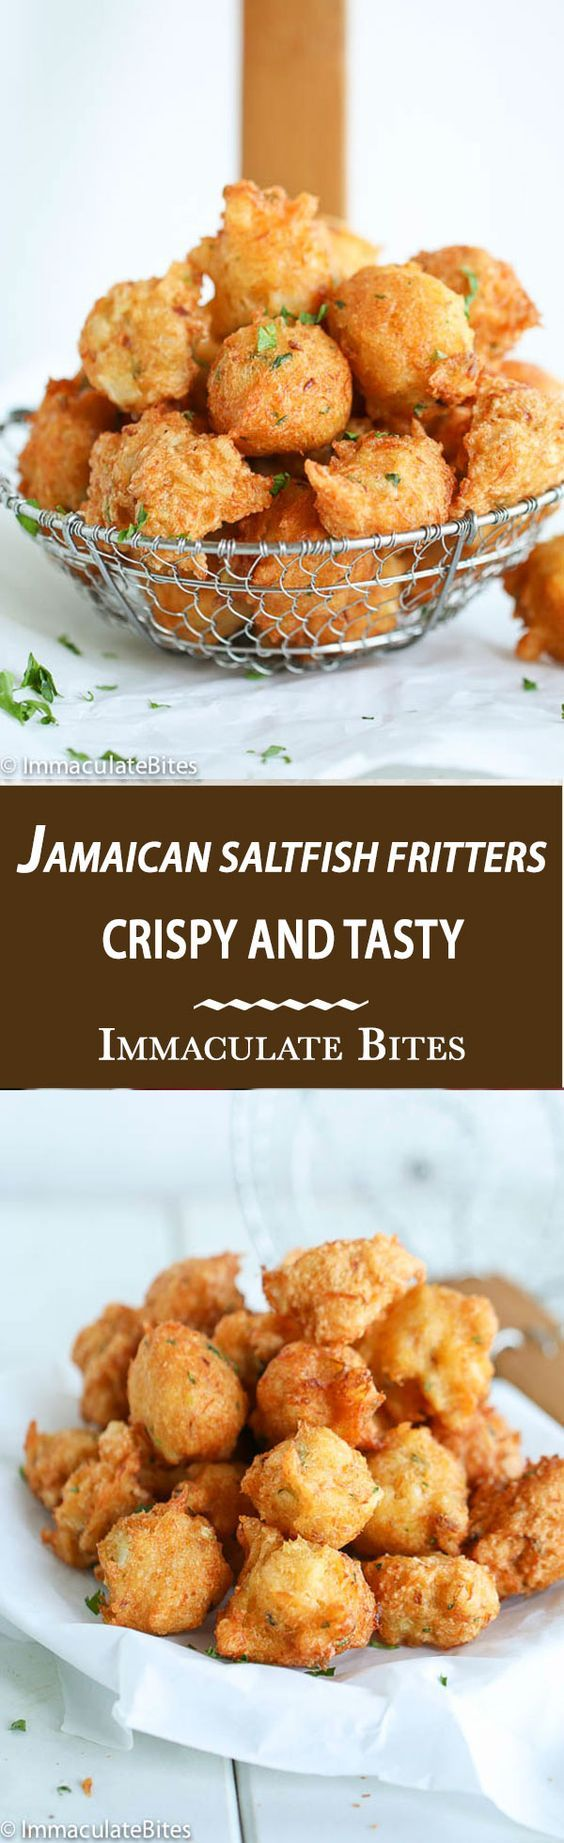 Spiced Jamaican Saltfish fritters – Crispy on the outside and soft on the inside…